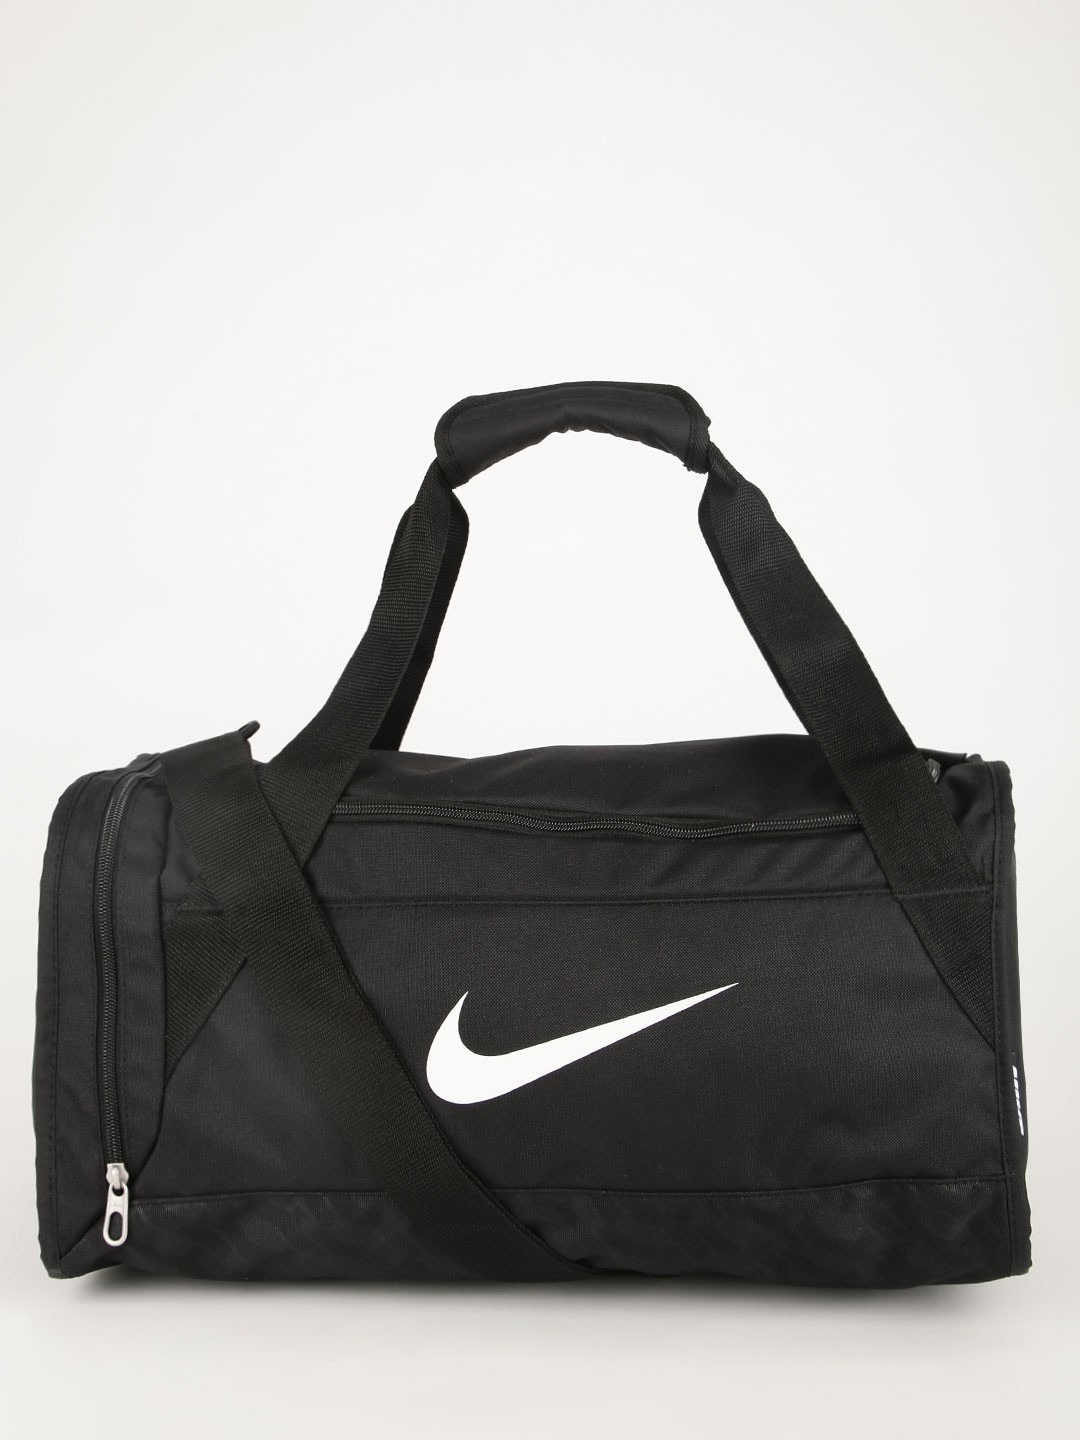 Buy NIKE Brasilia 6 X-small Duffel Bag For Men - Men's